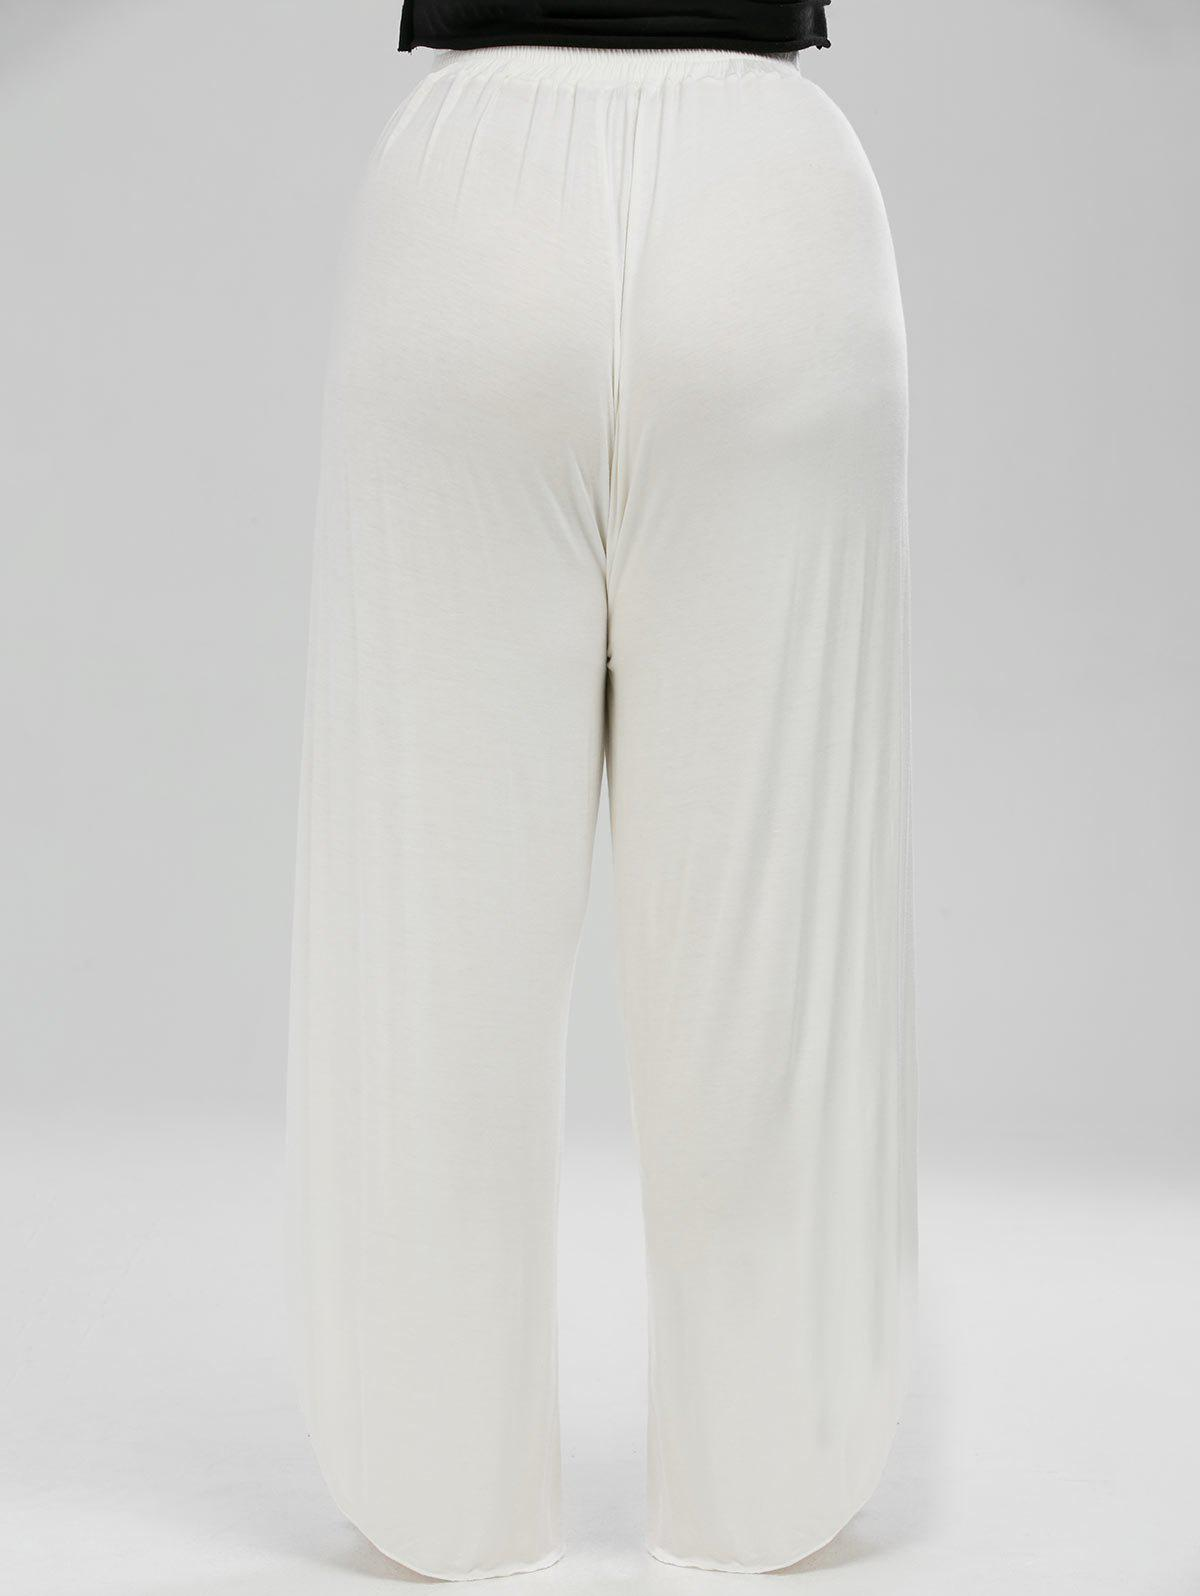 High Waisted Slit Palazzo Plus Size Pants - WHITE XL